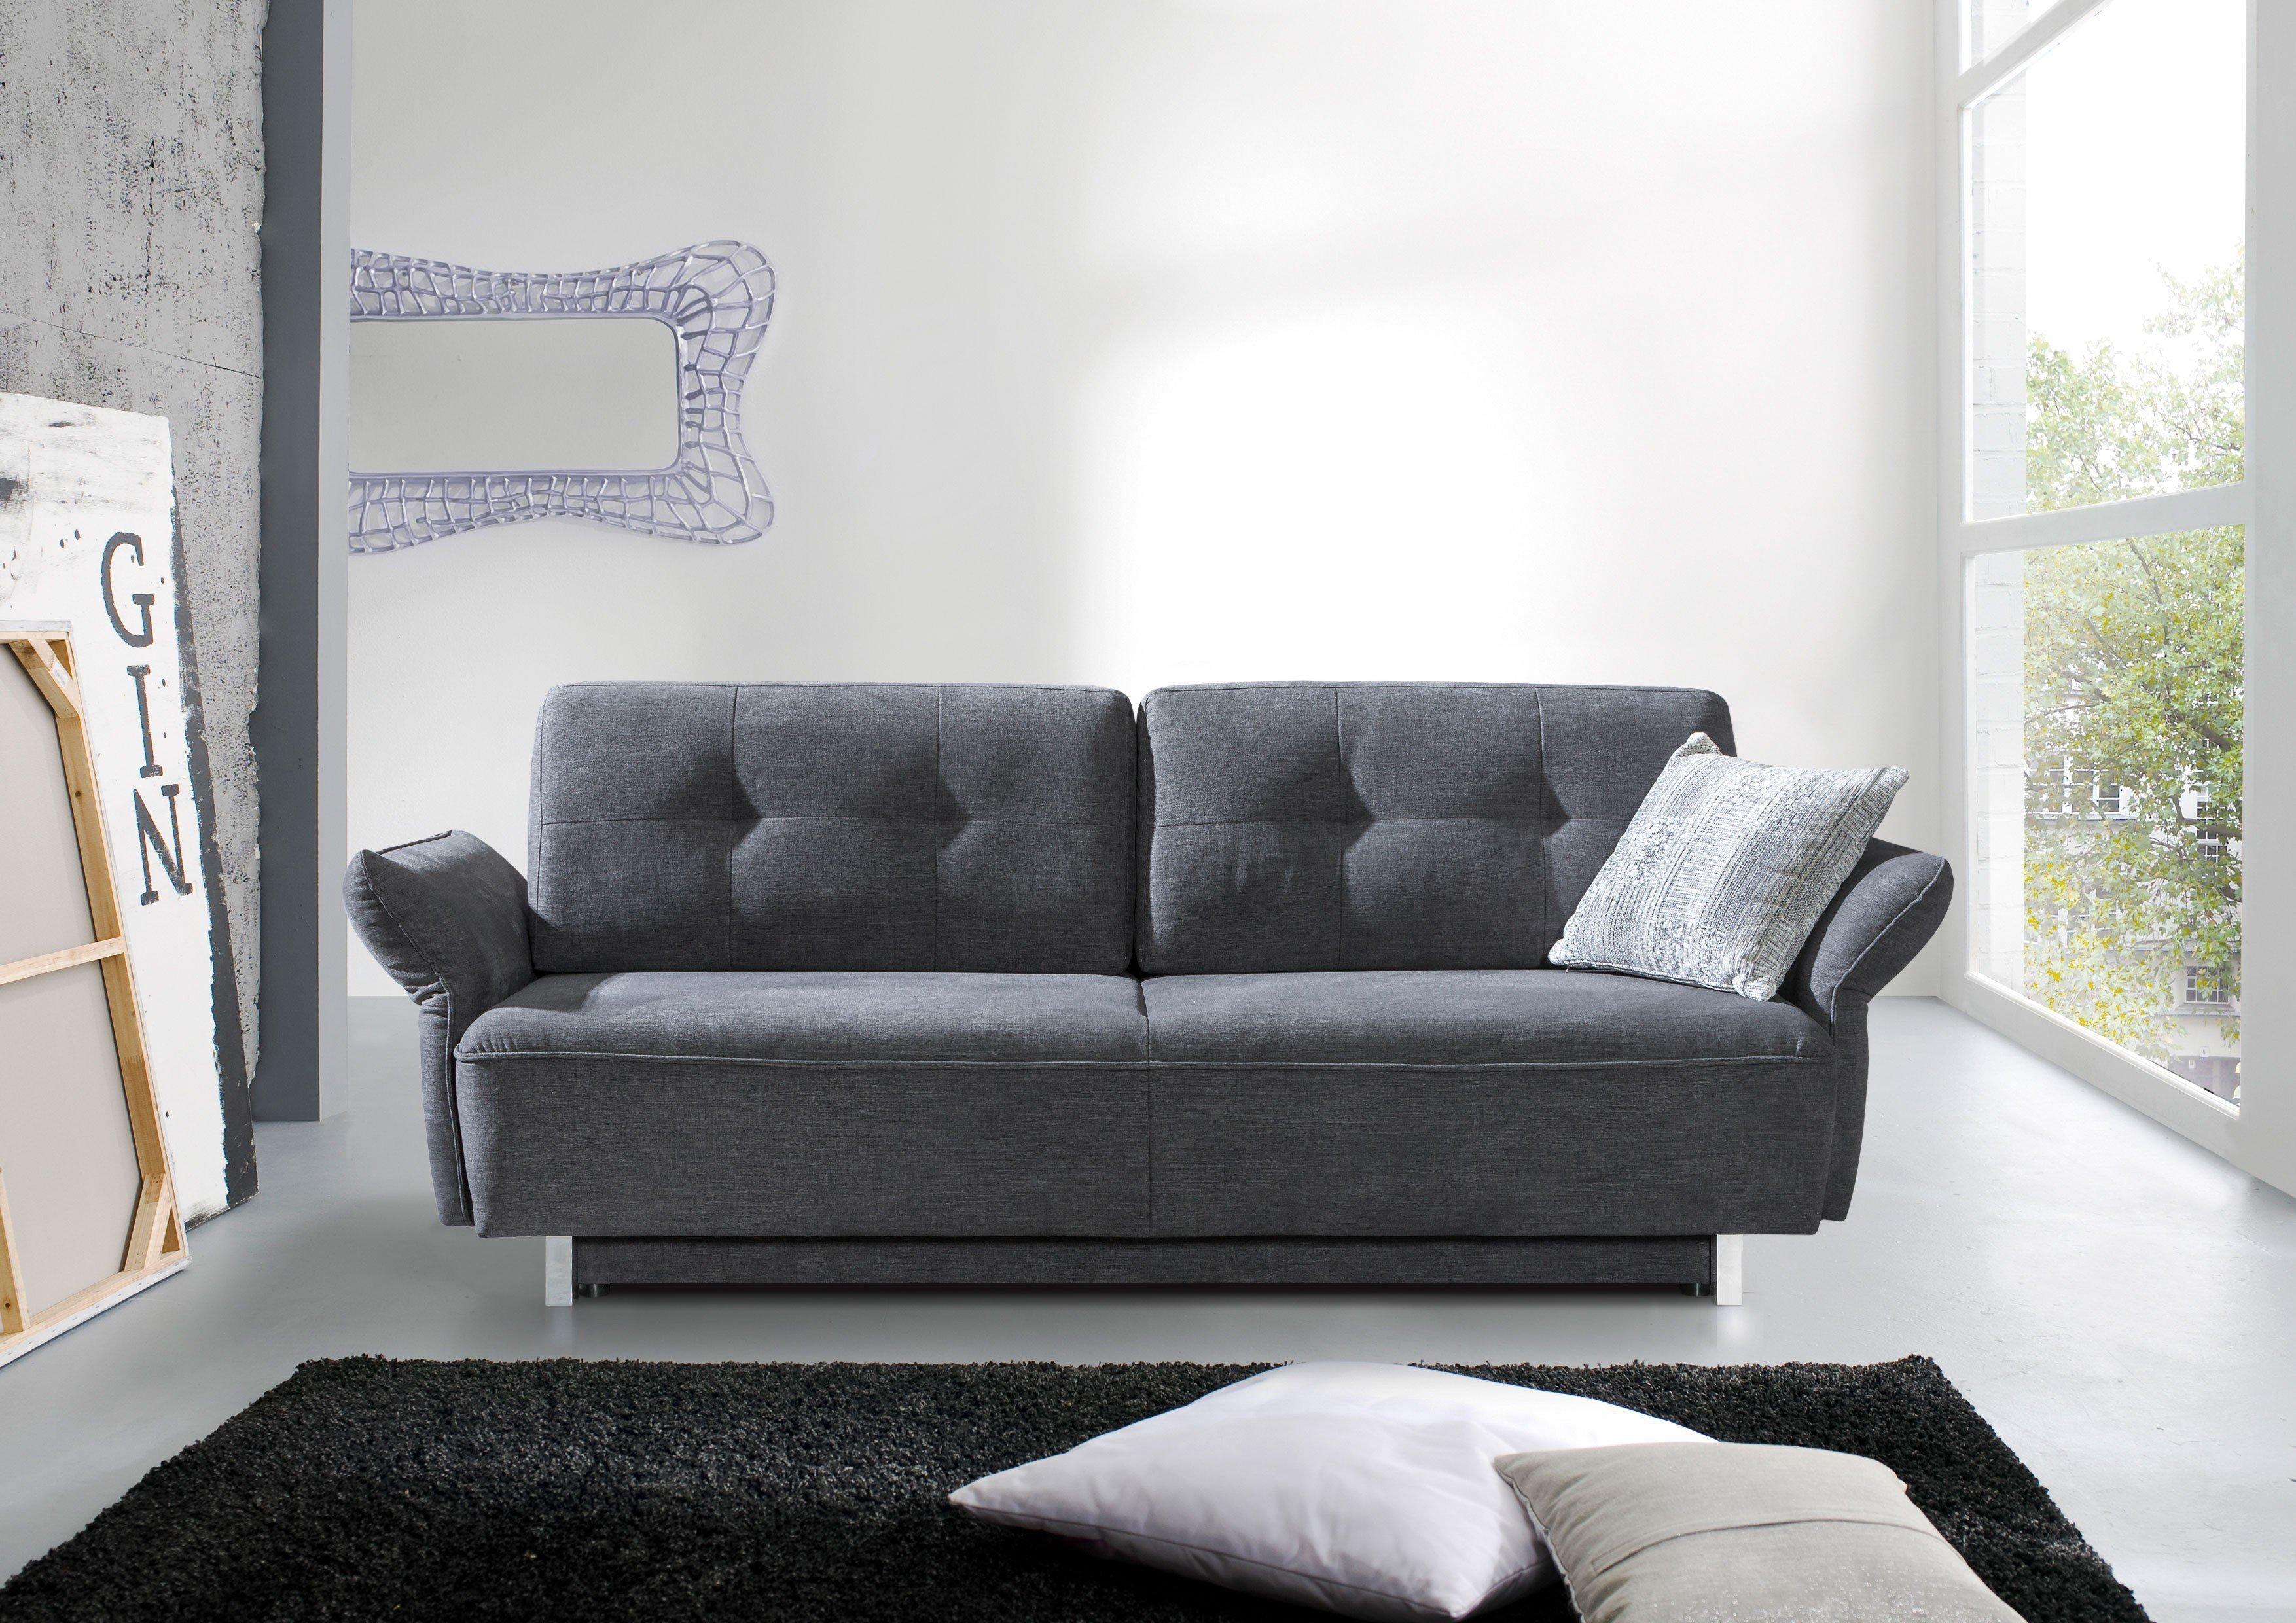 restyl bonita schlafsofa in anthrazit mit bettkasten m bel letz ihr online shop. Black Bedroom Furniture Sets. Home Design Ideas